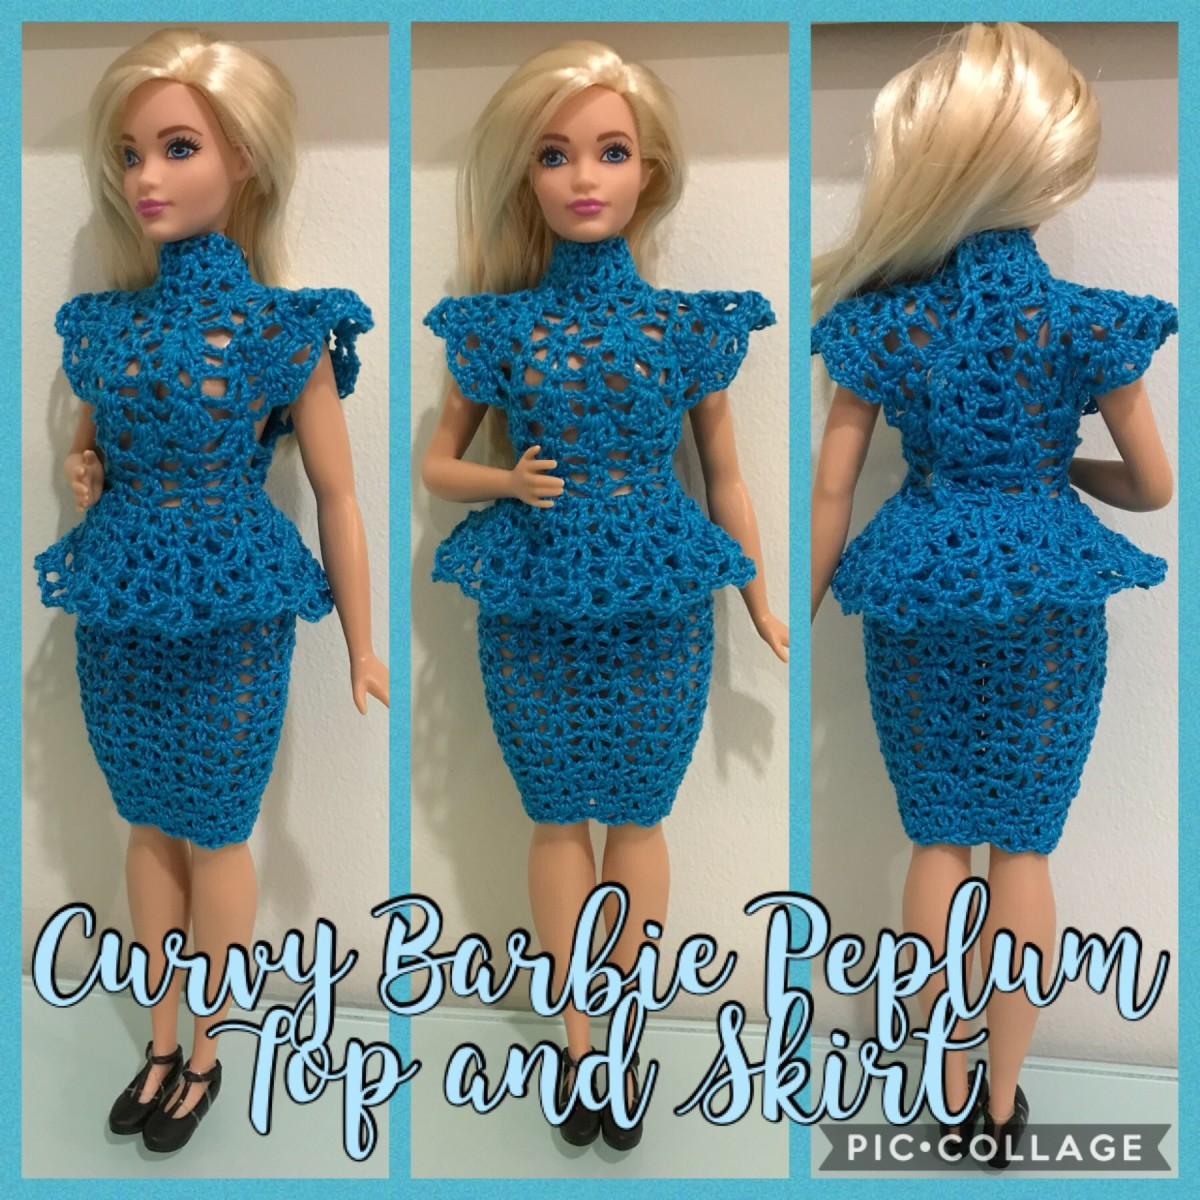 Curvy Barbie Peplum Top and Skirt (Free Crochet Pattern)